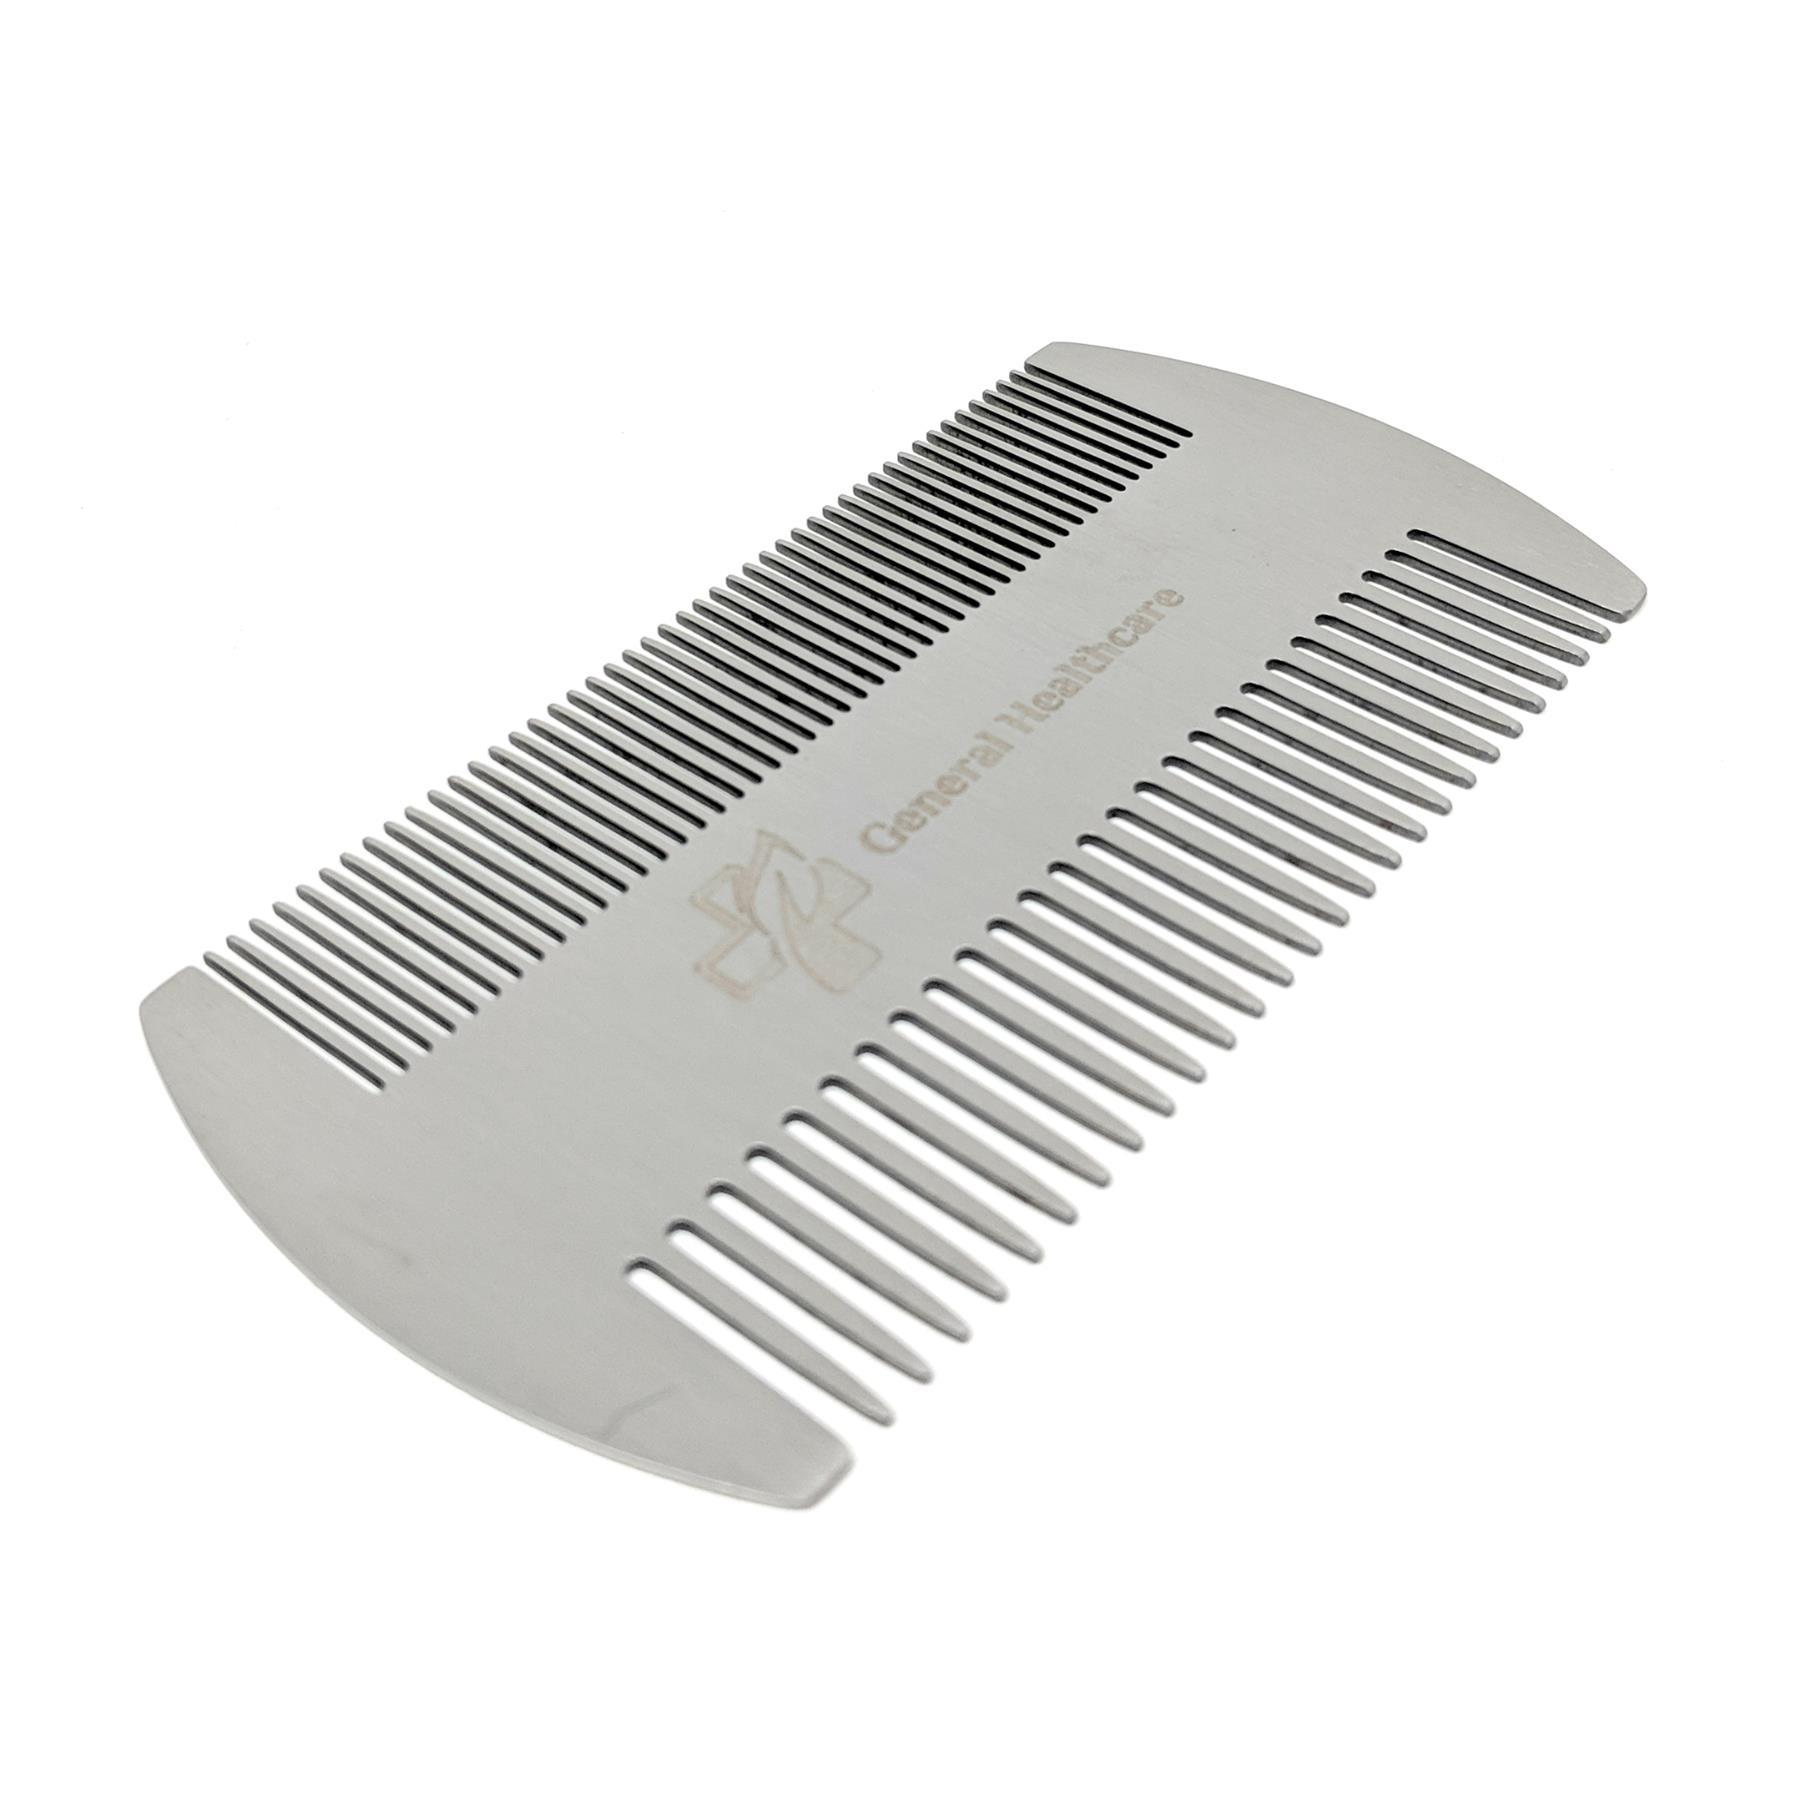 General Healthcare Metal Stainless Steel Hair Comb - Dual Action Lice Hair Beard